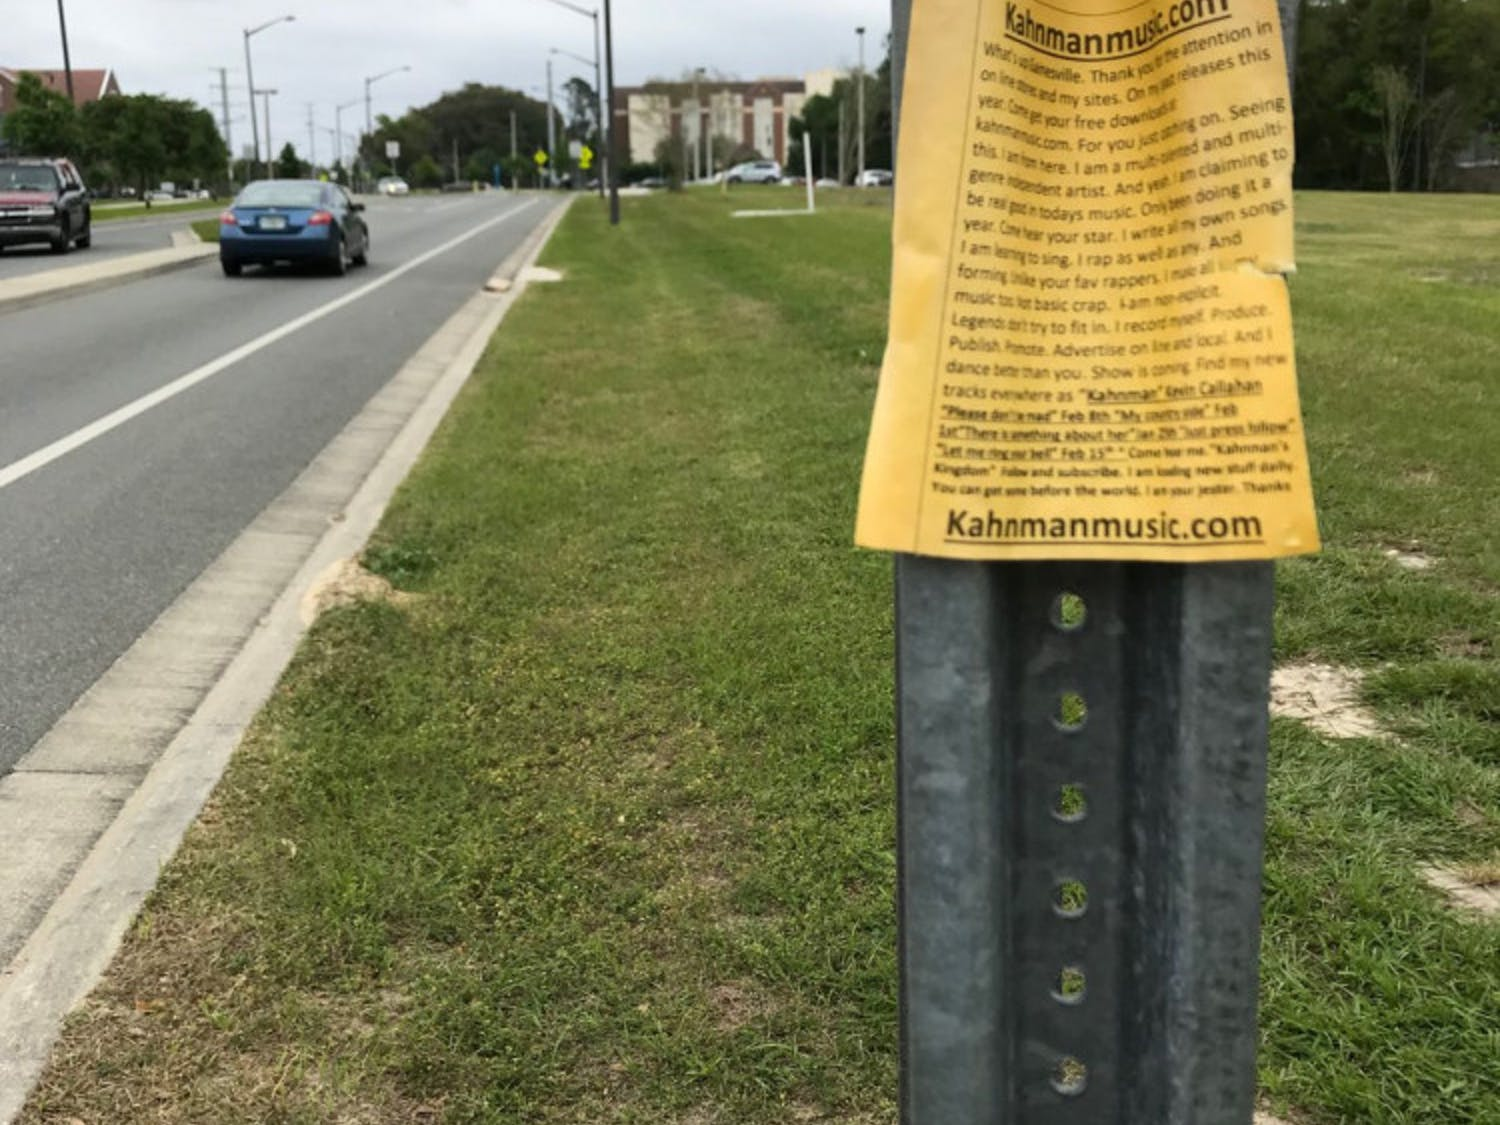 Callahan posted these yellow flyers at bus stops across Gainesville to promote his music.